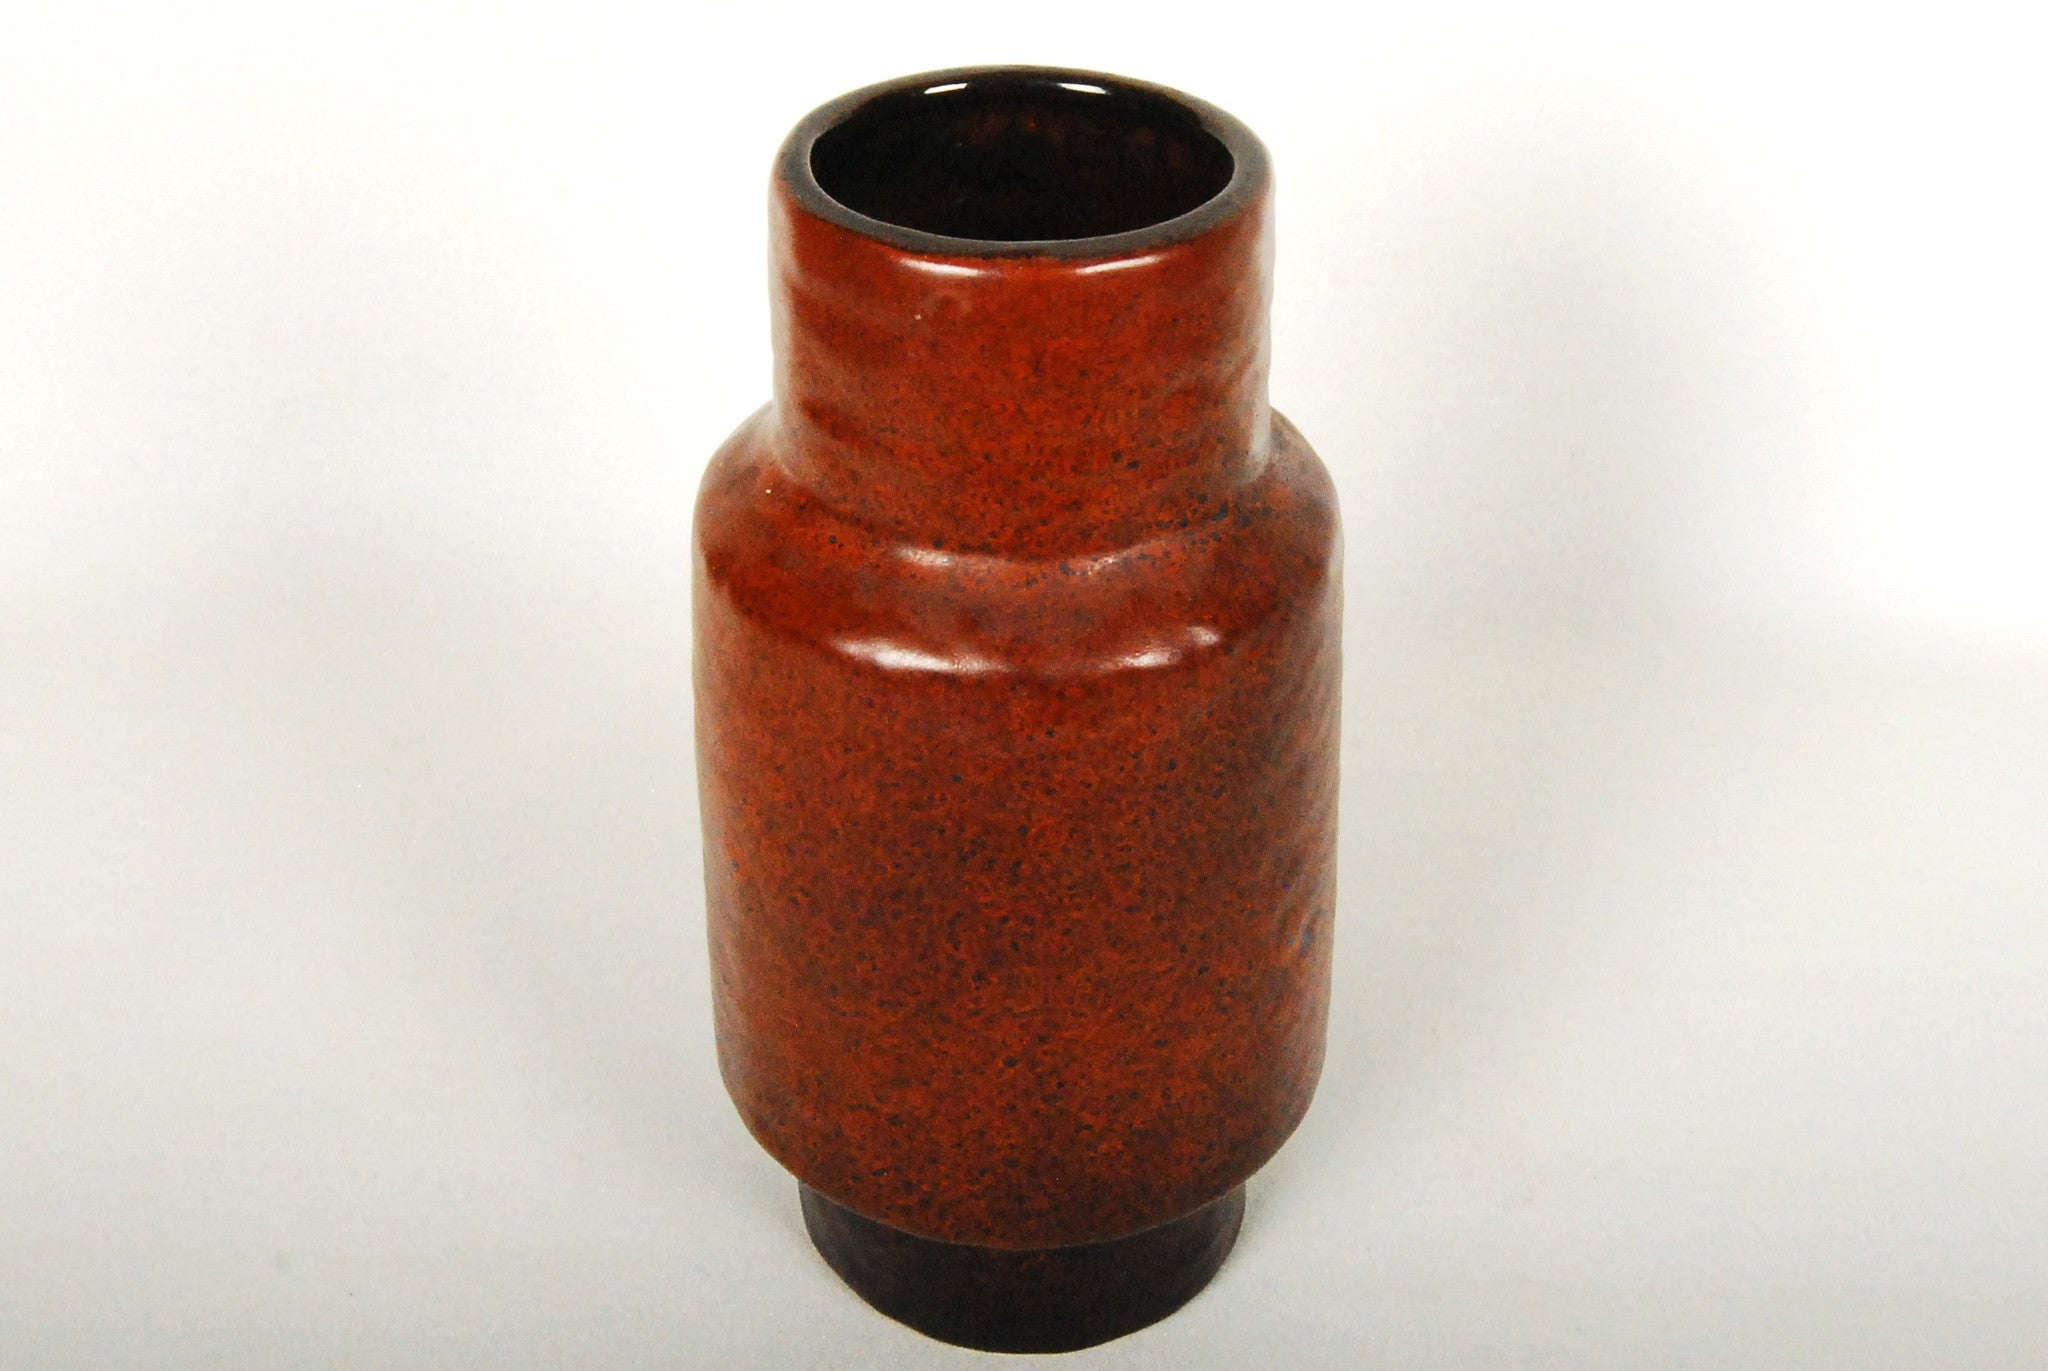 Vase by Carstens West Germany